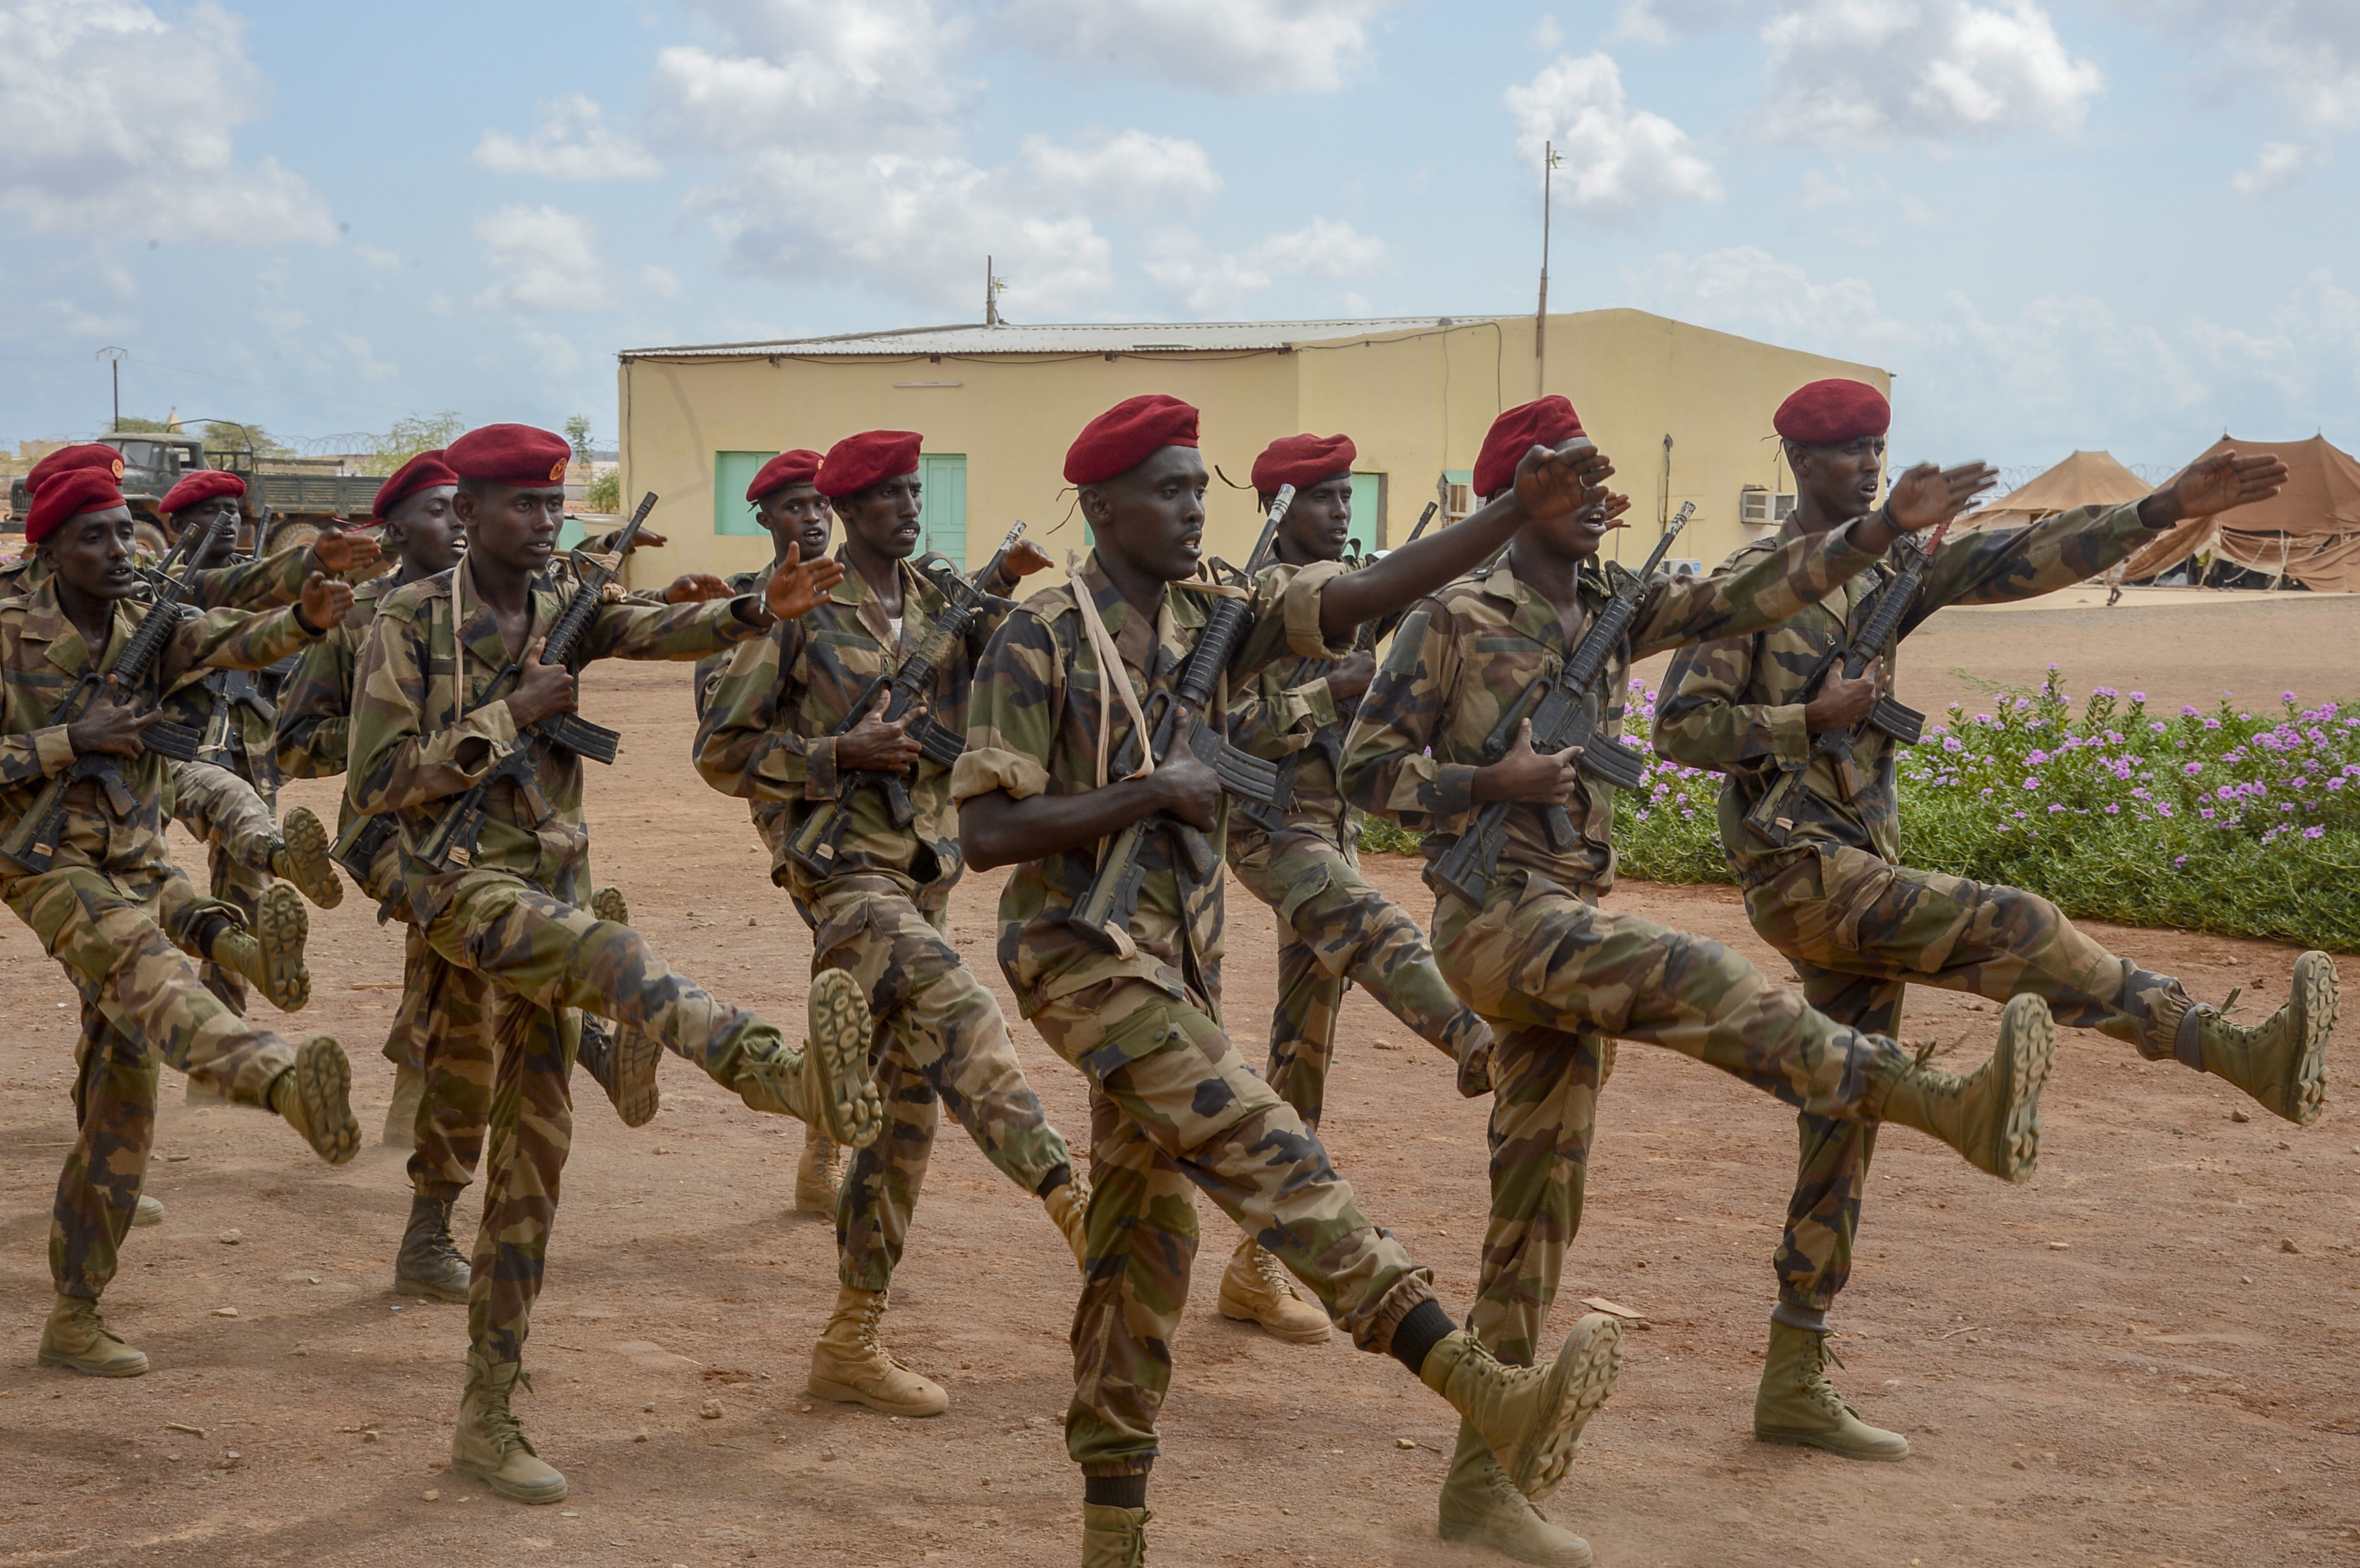 Djiboutian soldiers march in formation following the culminating exercise of a five-week training cycle for the newly formed Rapid Intervention Battalion (RIB), a Djiboutian army crisis response unit, at a site outside Djibouti City, May 3, 2018.  U.S. Army Soldiers from Alpha Company, 3rd Battalion, 141st Infantry Regiment, Texas National Guard, assigned to Combined Joint Task Force- Horn of Africa conducted the RIB training. (U.S. Navy Photo by Mass Communication Specialist 2nd Class Timothy M. Ahearn)